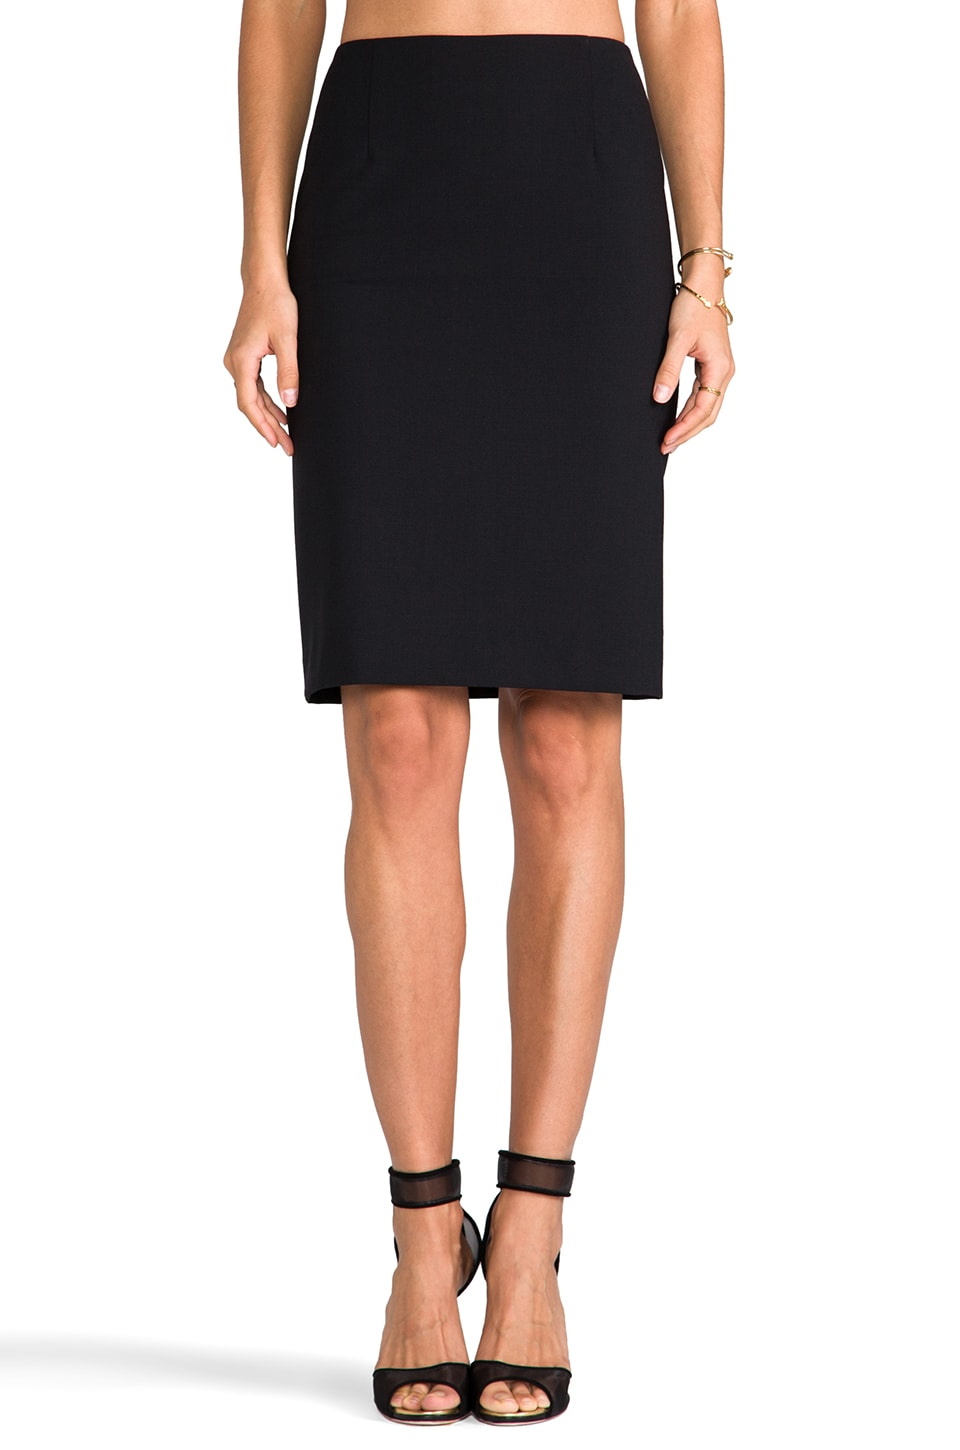 Theory Golda 2 Pencil Skirt in Black